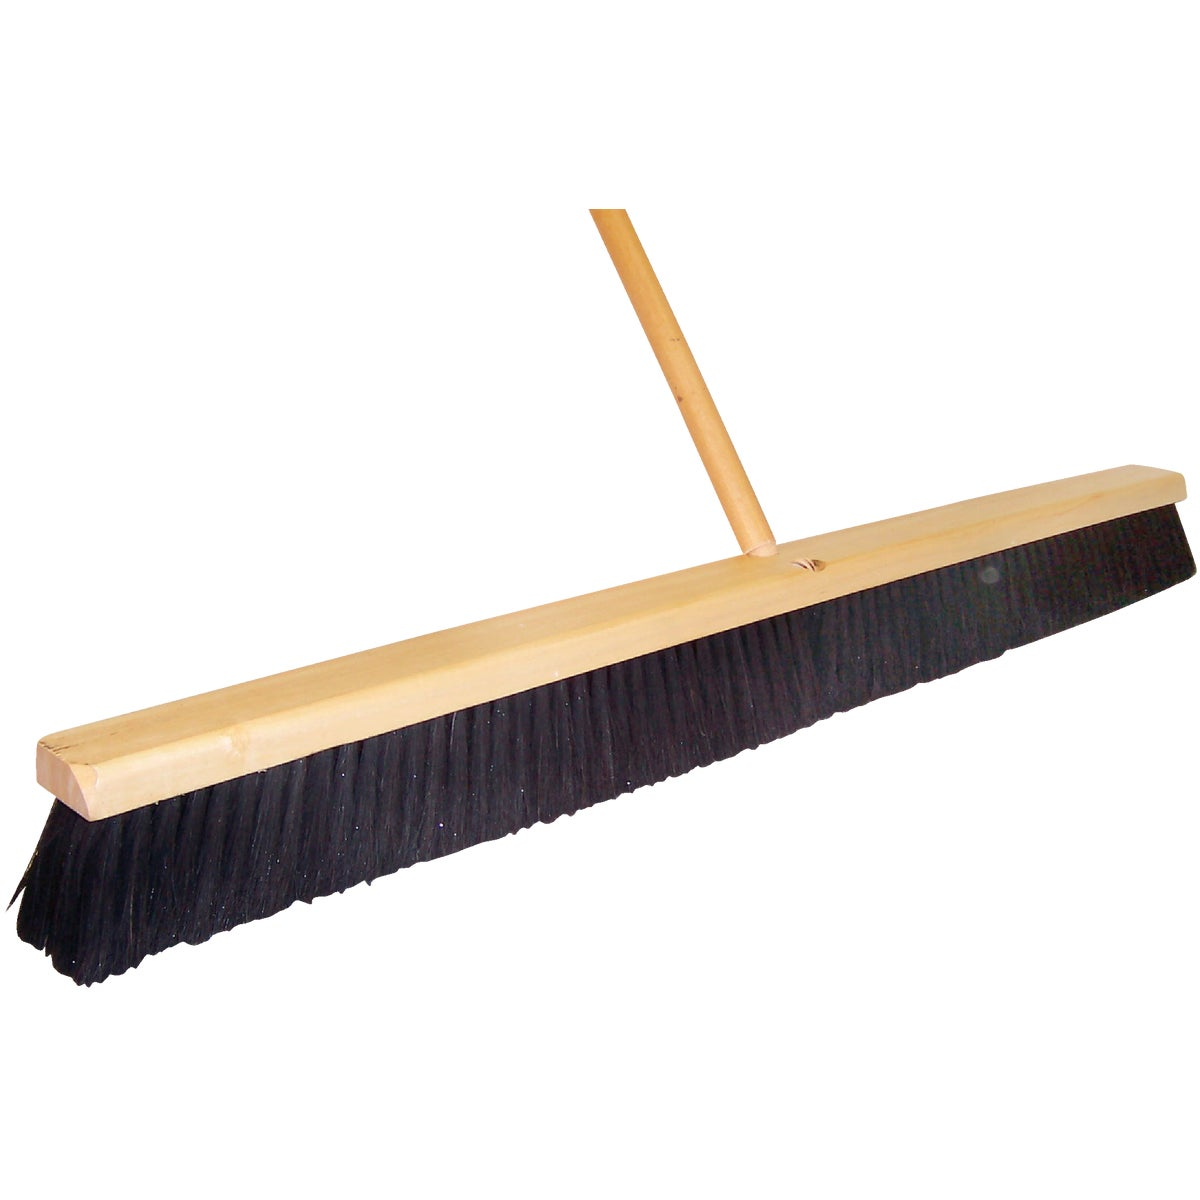 "36"" PUSH BROOM HEAD"